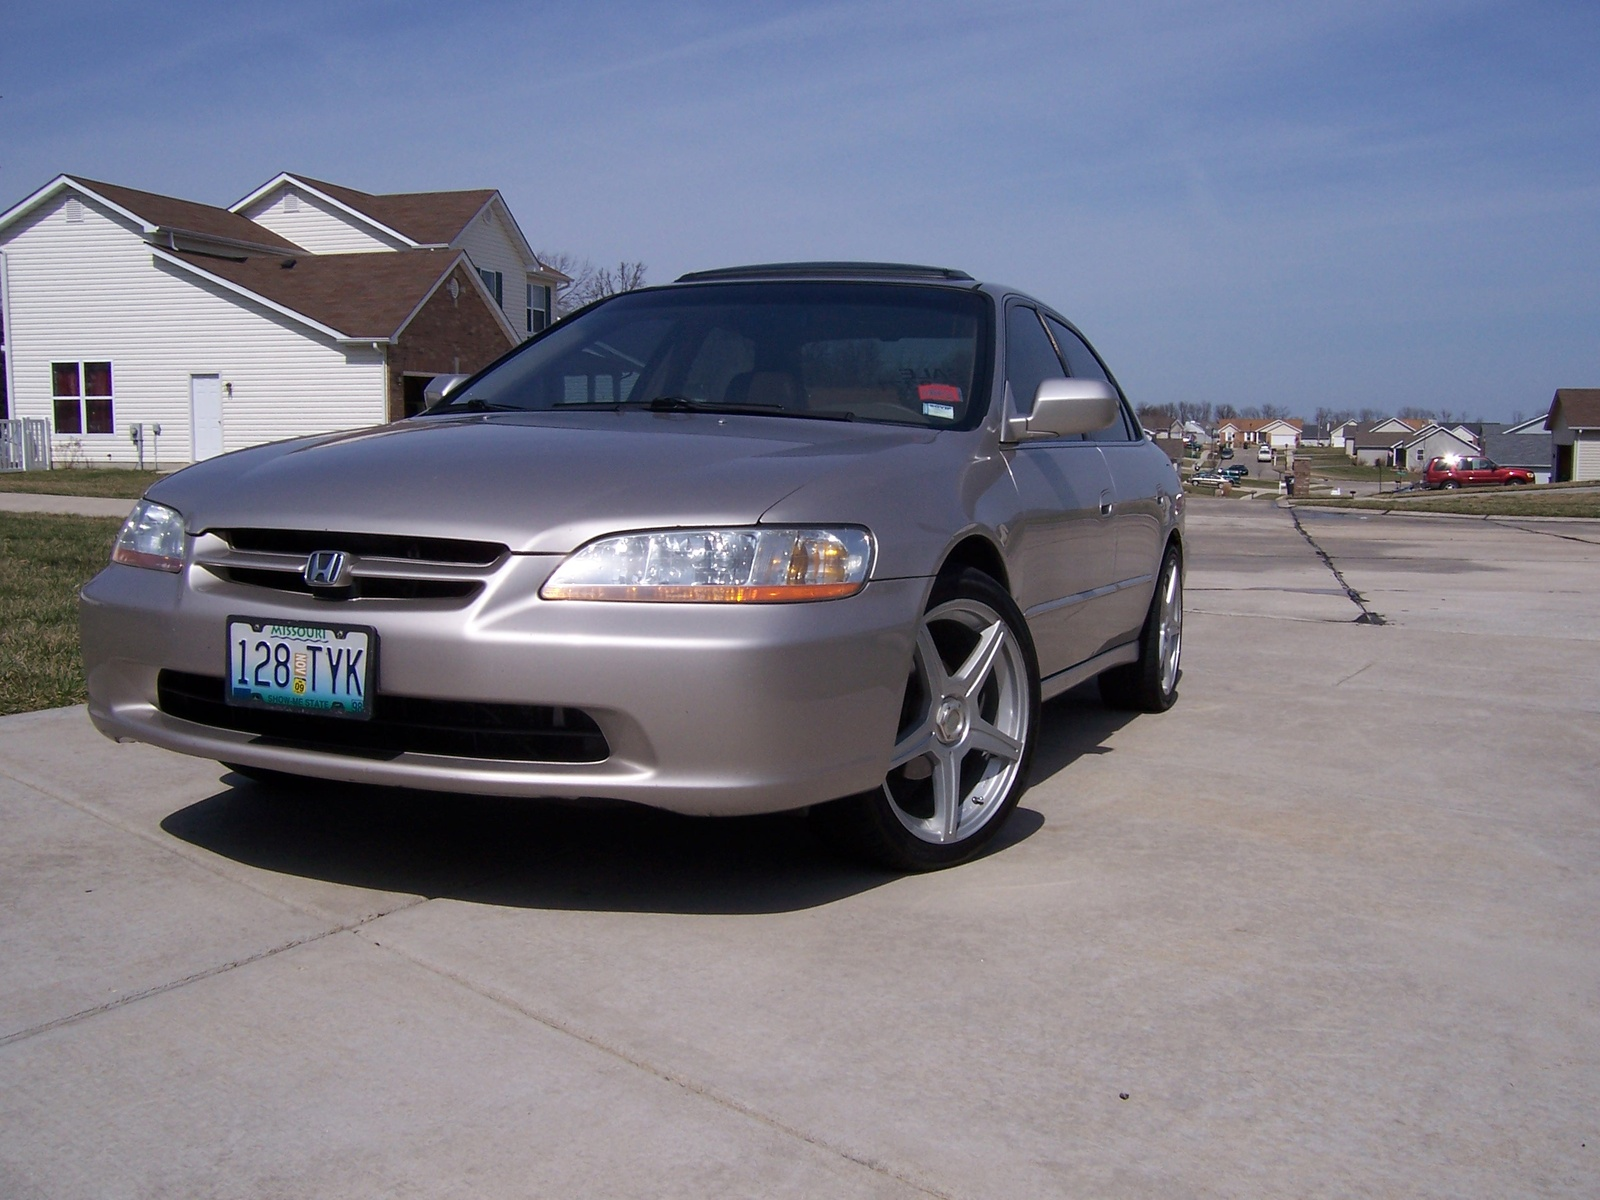 1999 honda accord coupe owners manual car insurance info. Black Bedroom Furniture Sets. Home Design Ideas